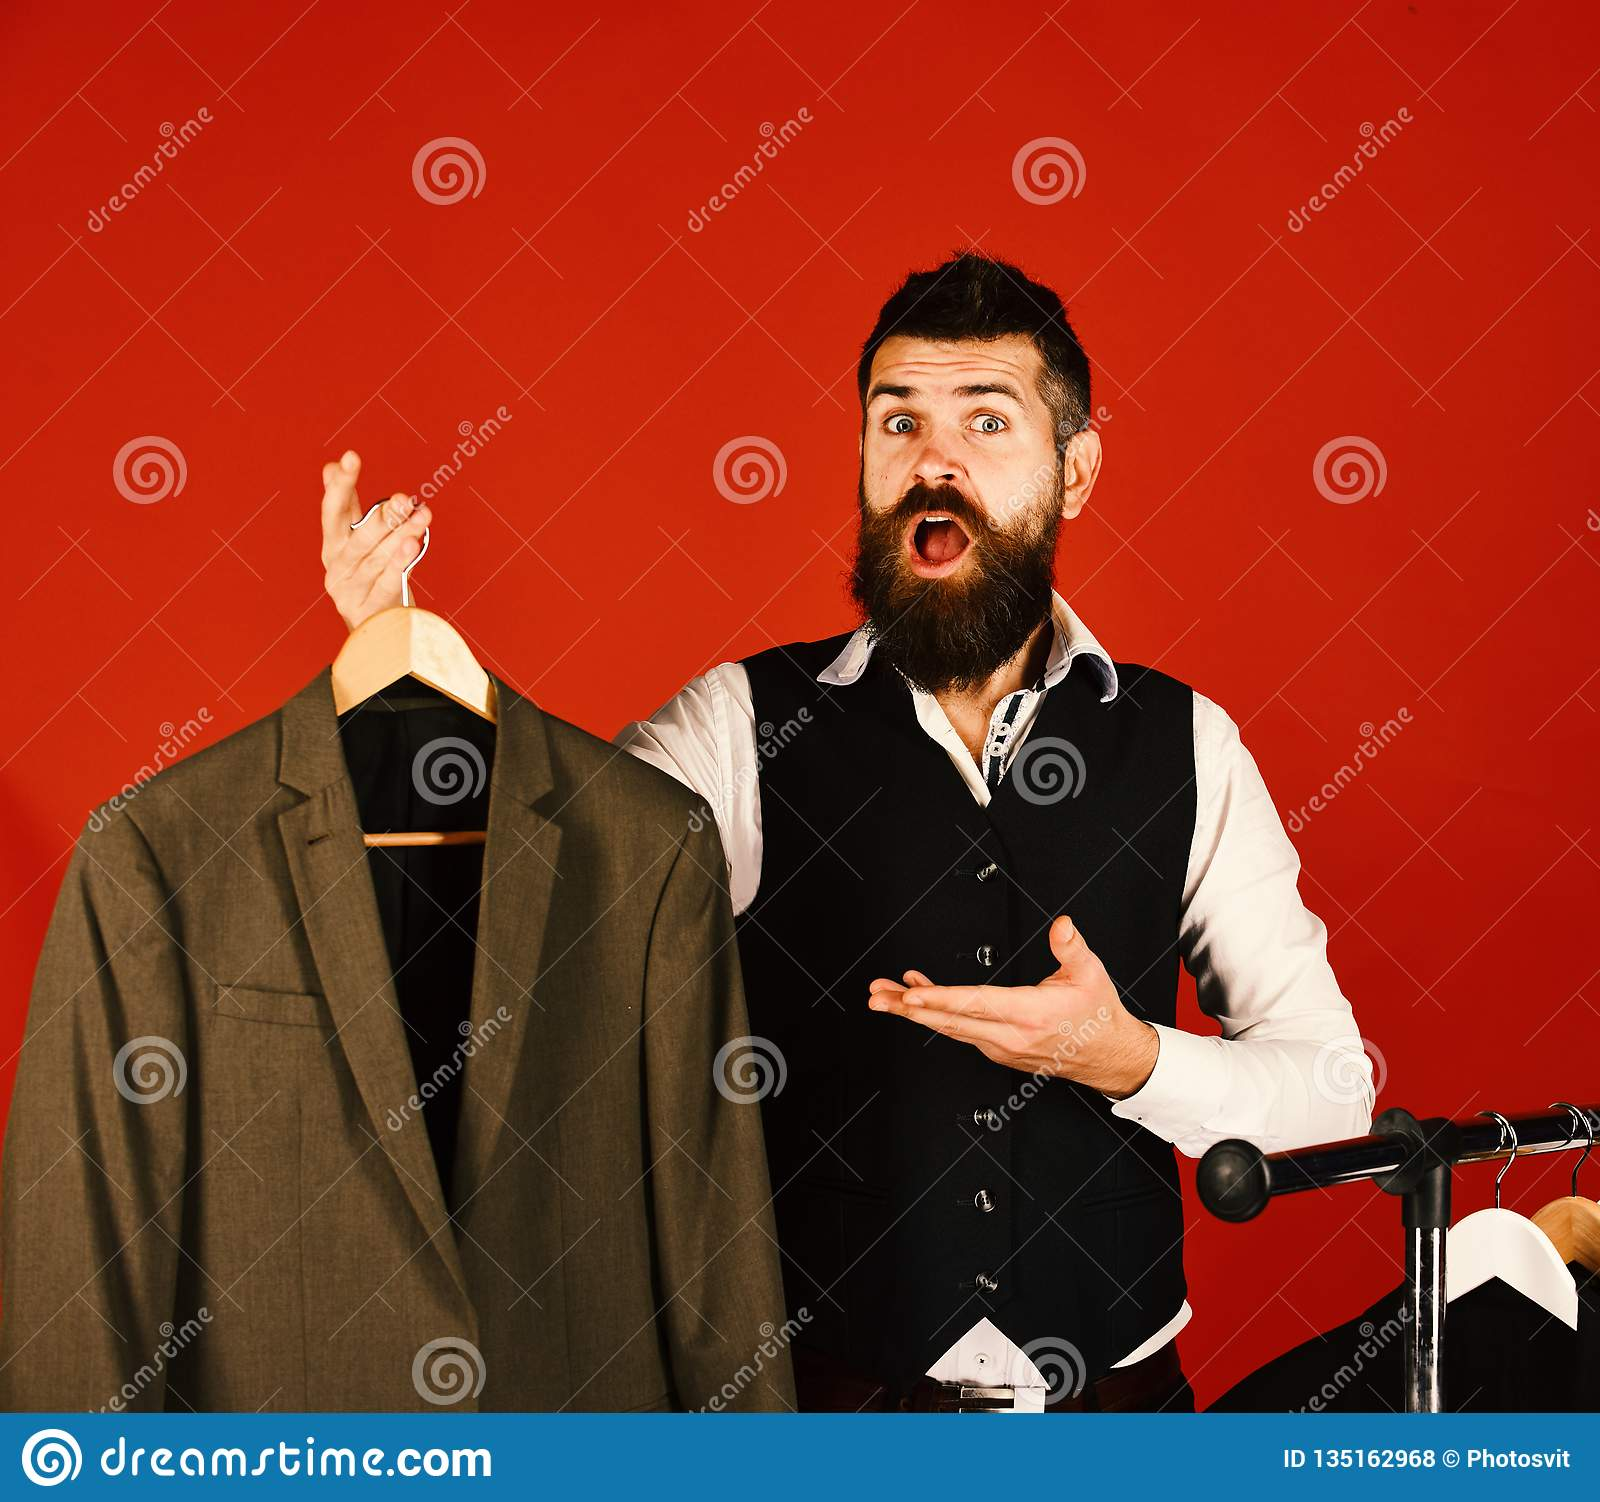 Designer and suit on clothes hanger. Man with beard